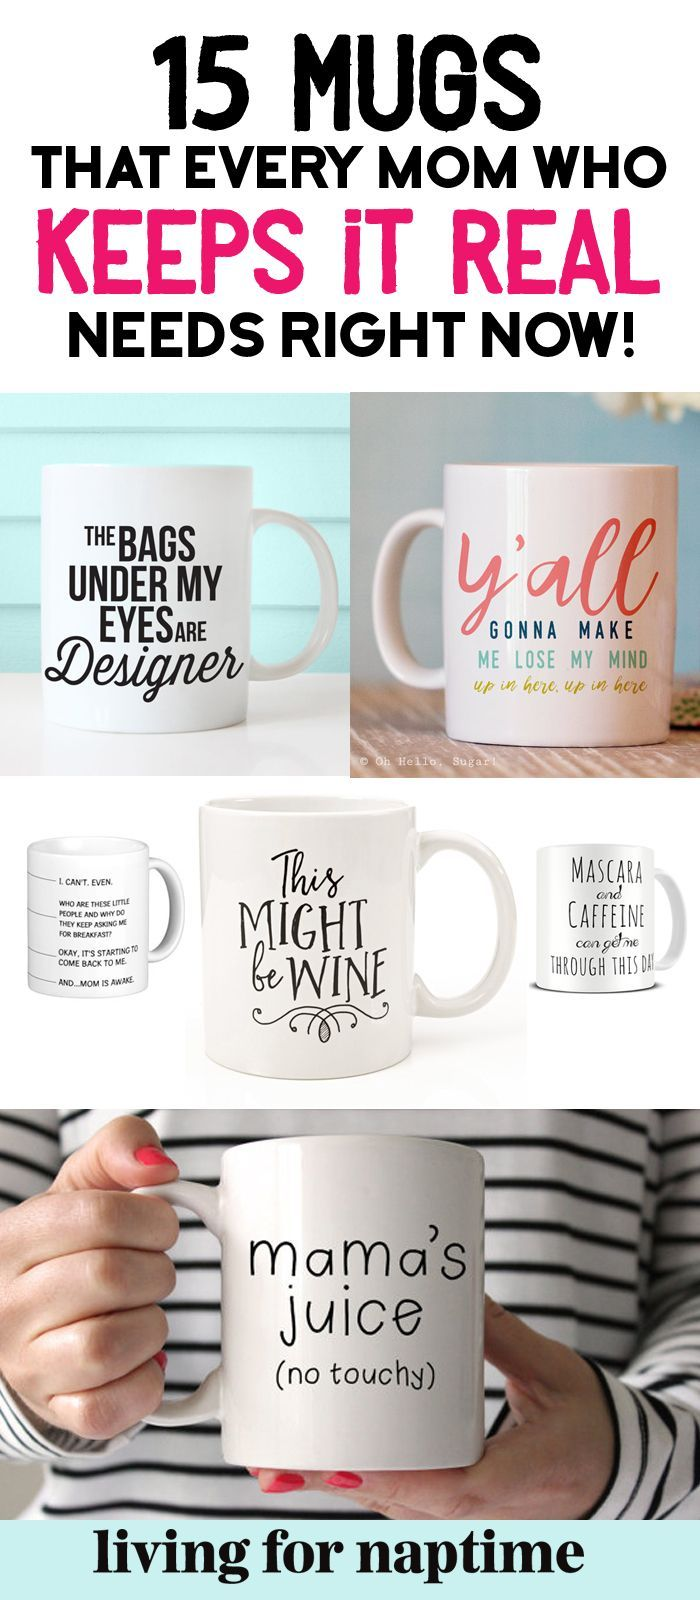 Worlds best doctor coffee mugs - 15 Mugs Every Mom Who Keeps It Real Needs For Her Morning Coffee